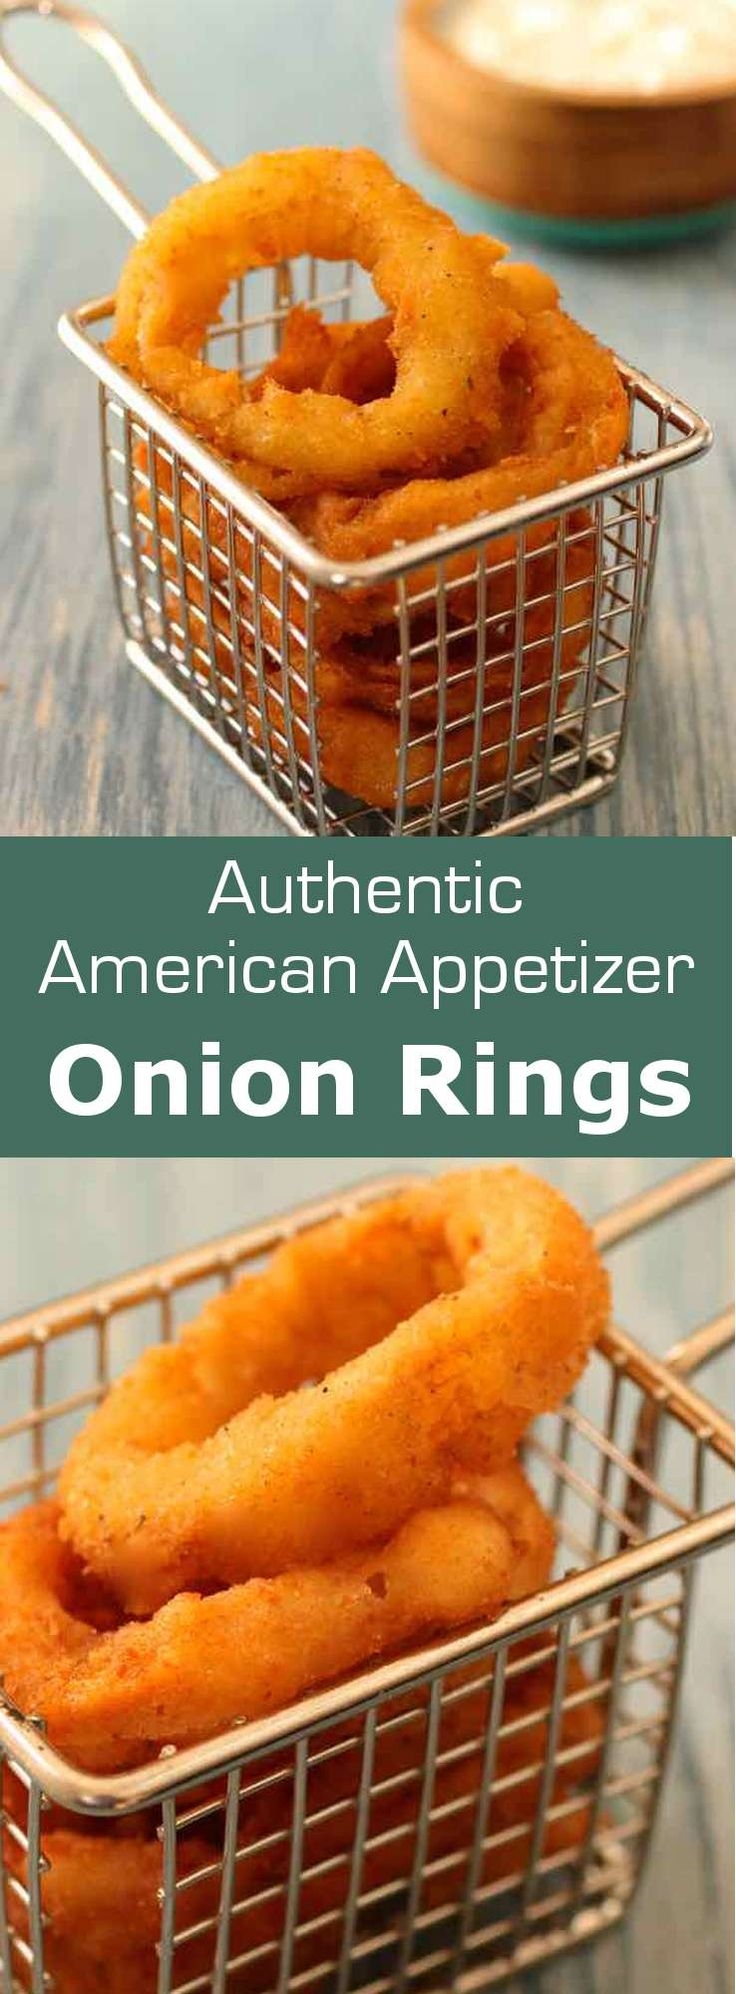 Traditional American recipe of the famous onion rings, fried and served with ranch dressing or barbecue sauce. #AmericanCuisine #AmericanClassic #AmericanRecipe #BarFood #SideDish #Appetizer #196flavors